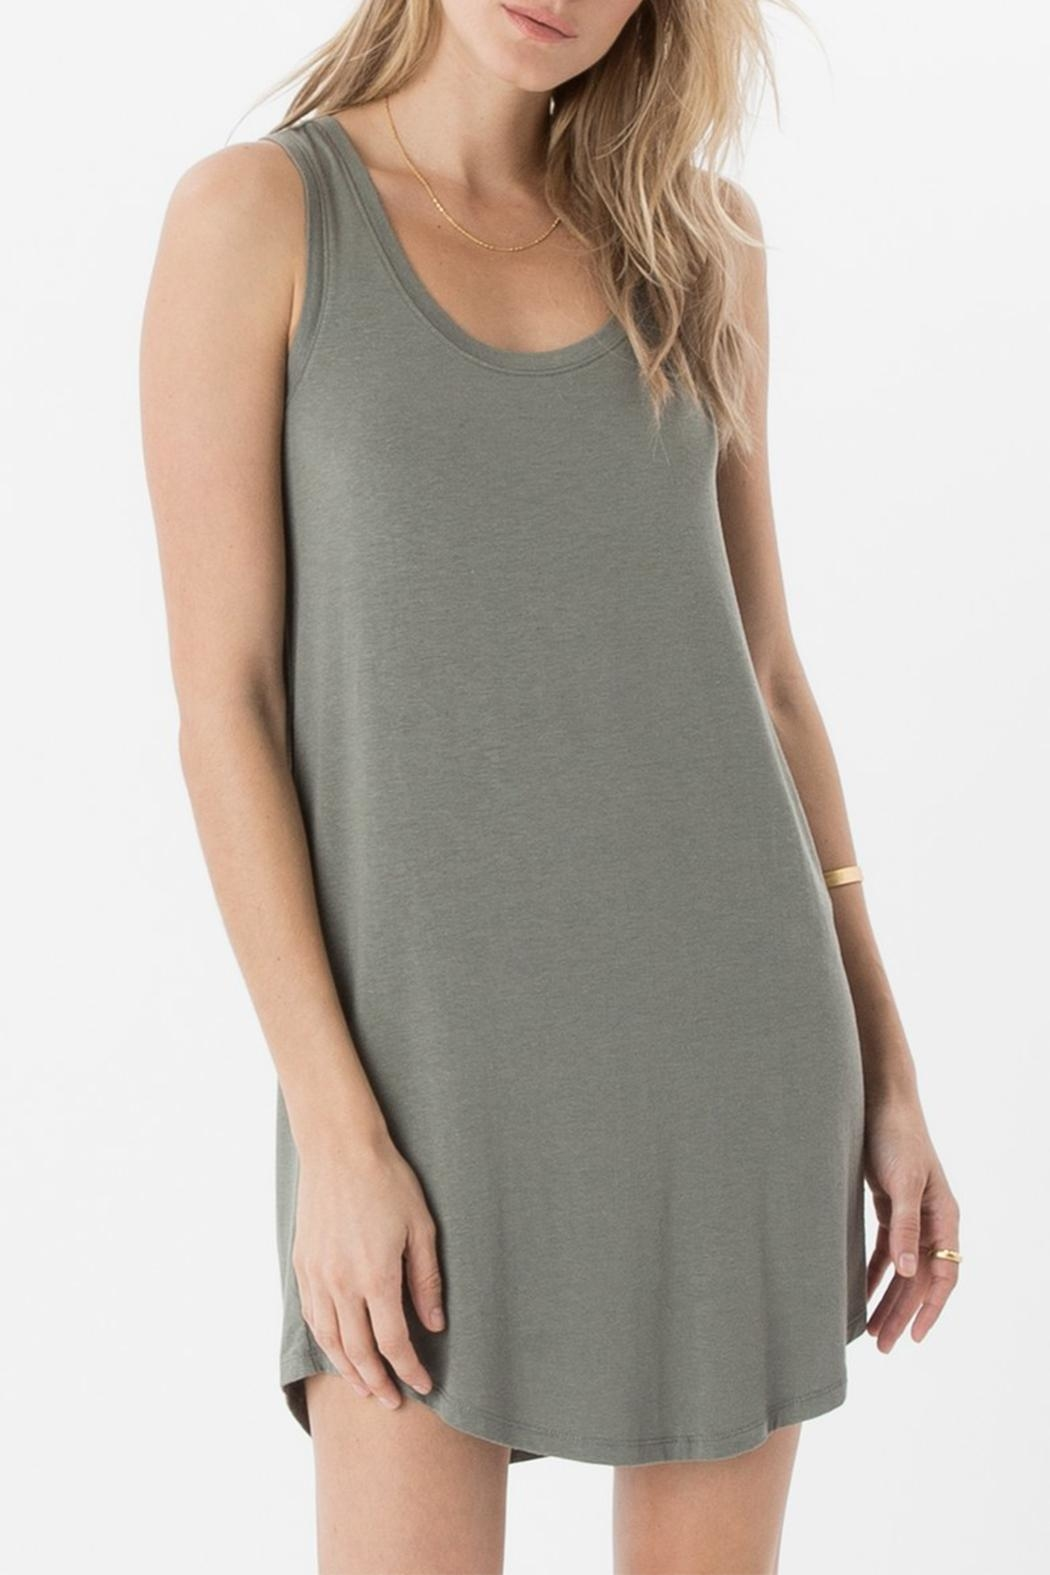 z supply Coastline Scoop Tunic Dress - Front Cropped Image